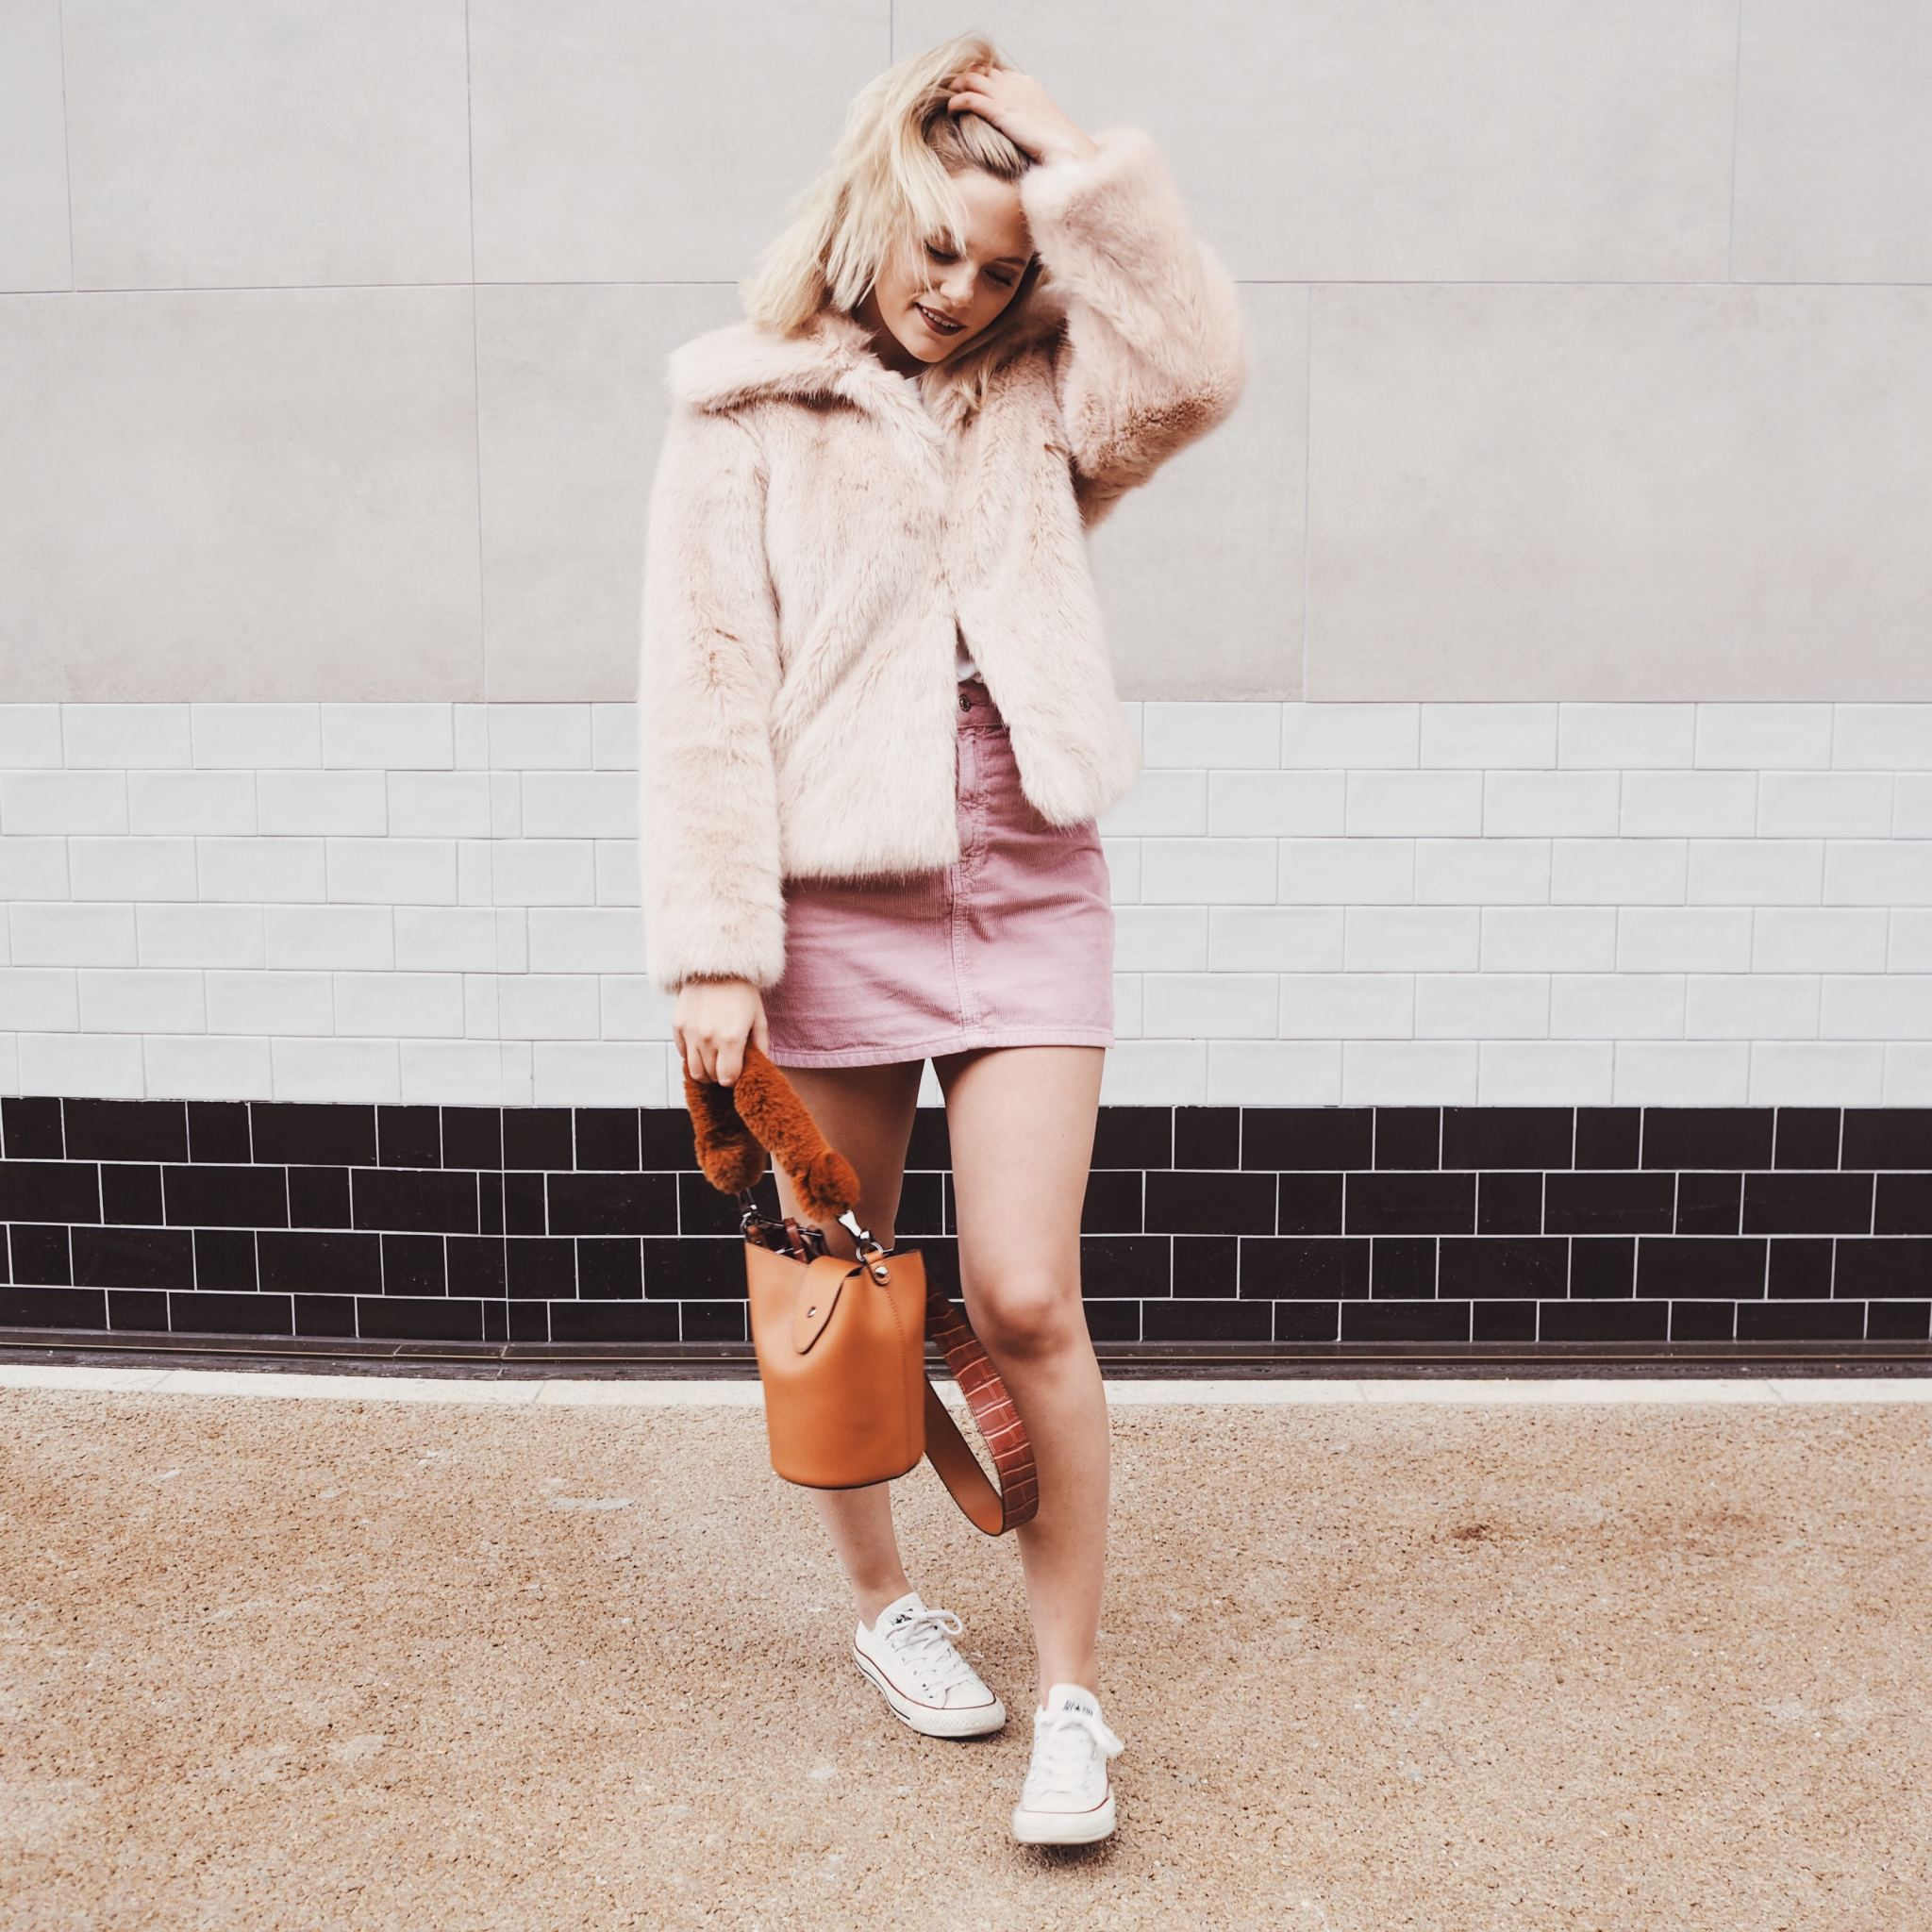 topshop coat, fur coat bag new season trends autumnal clothing brown bag wind windy weather